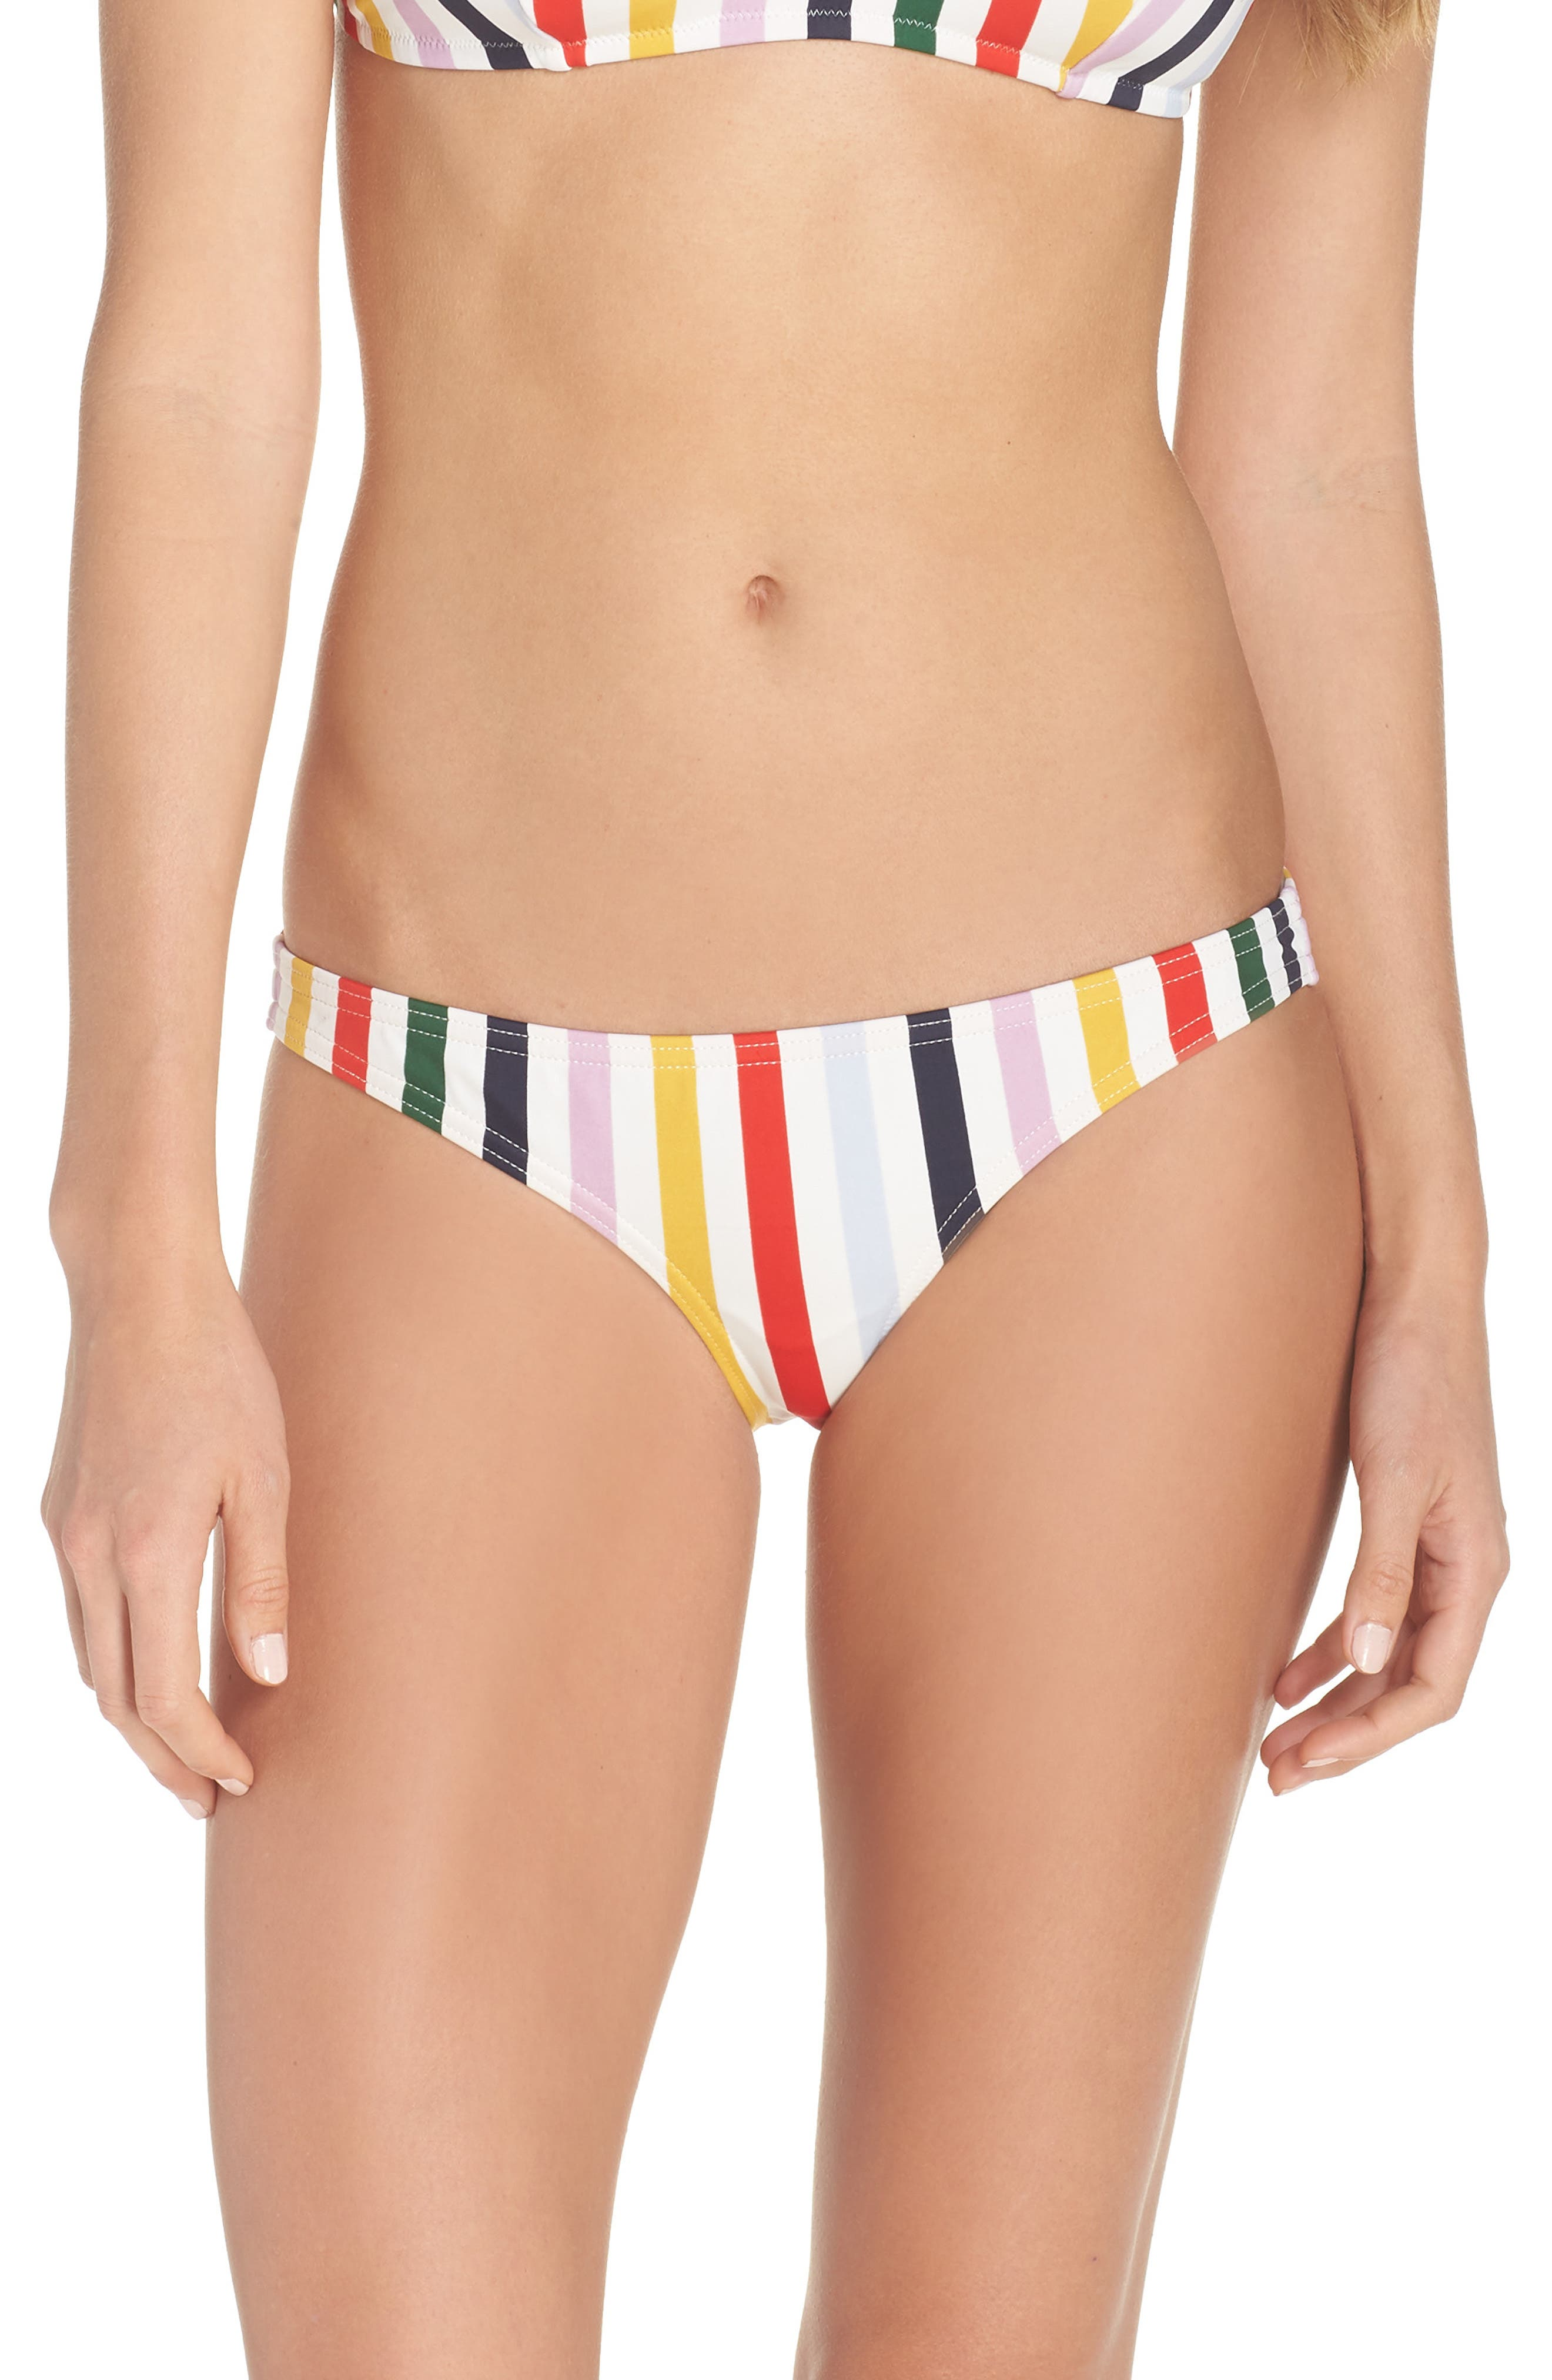 Holiday Stripe Lowrider Bikini Bottoms,                             Main thumbnail 1, color,                             IVORY RICH GOLD MULTI